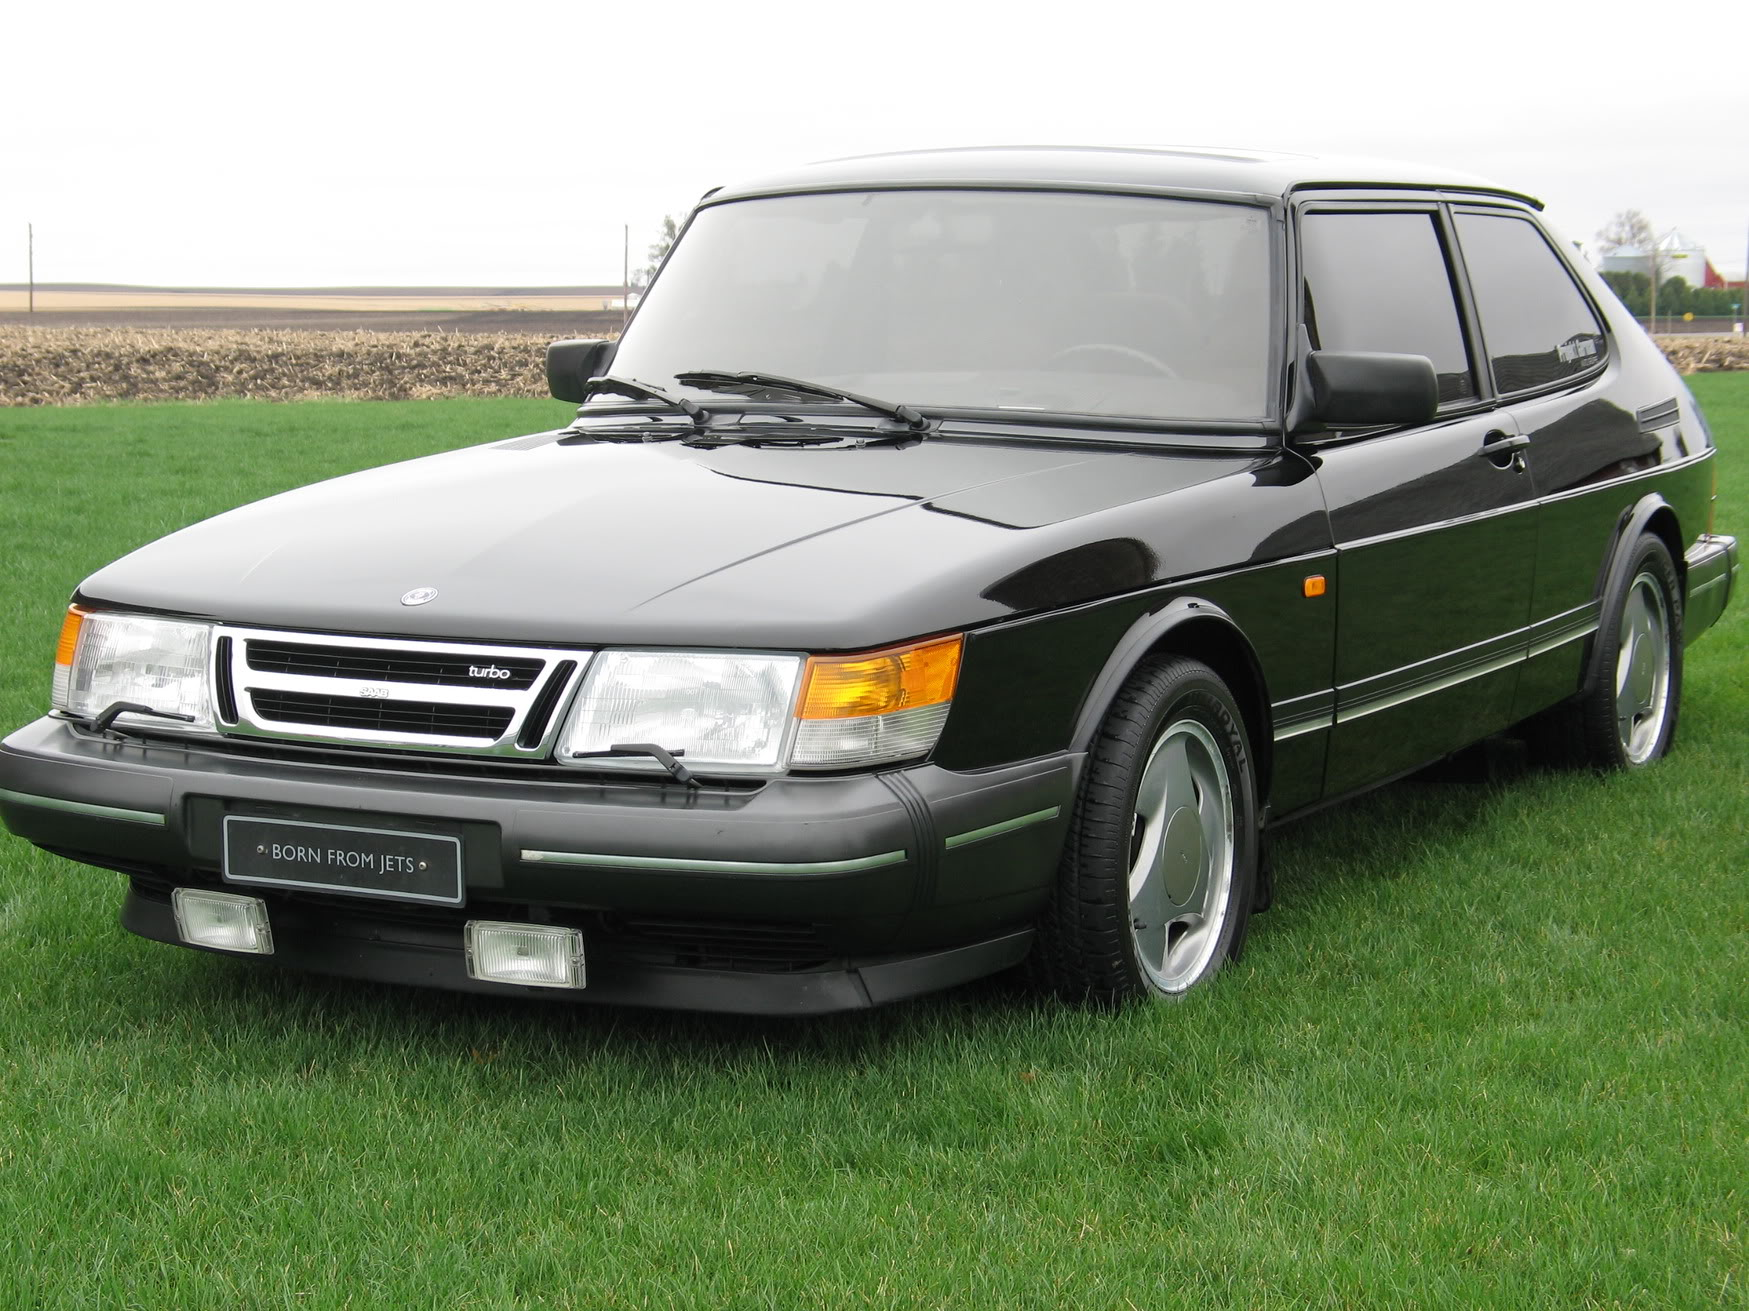 1993 Saab 900 - Information And Photos